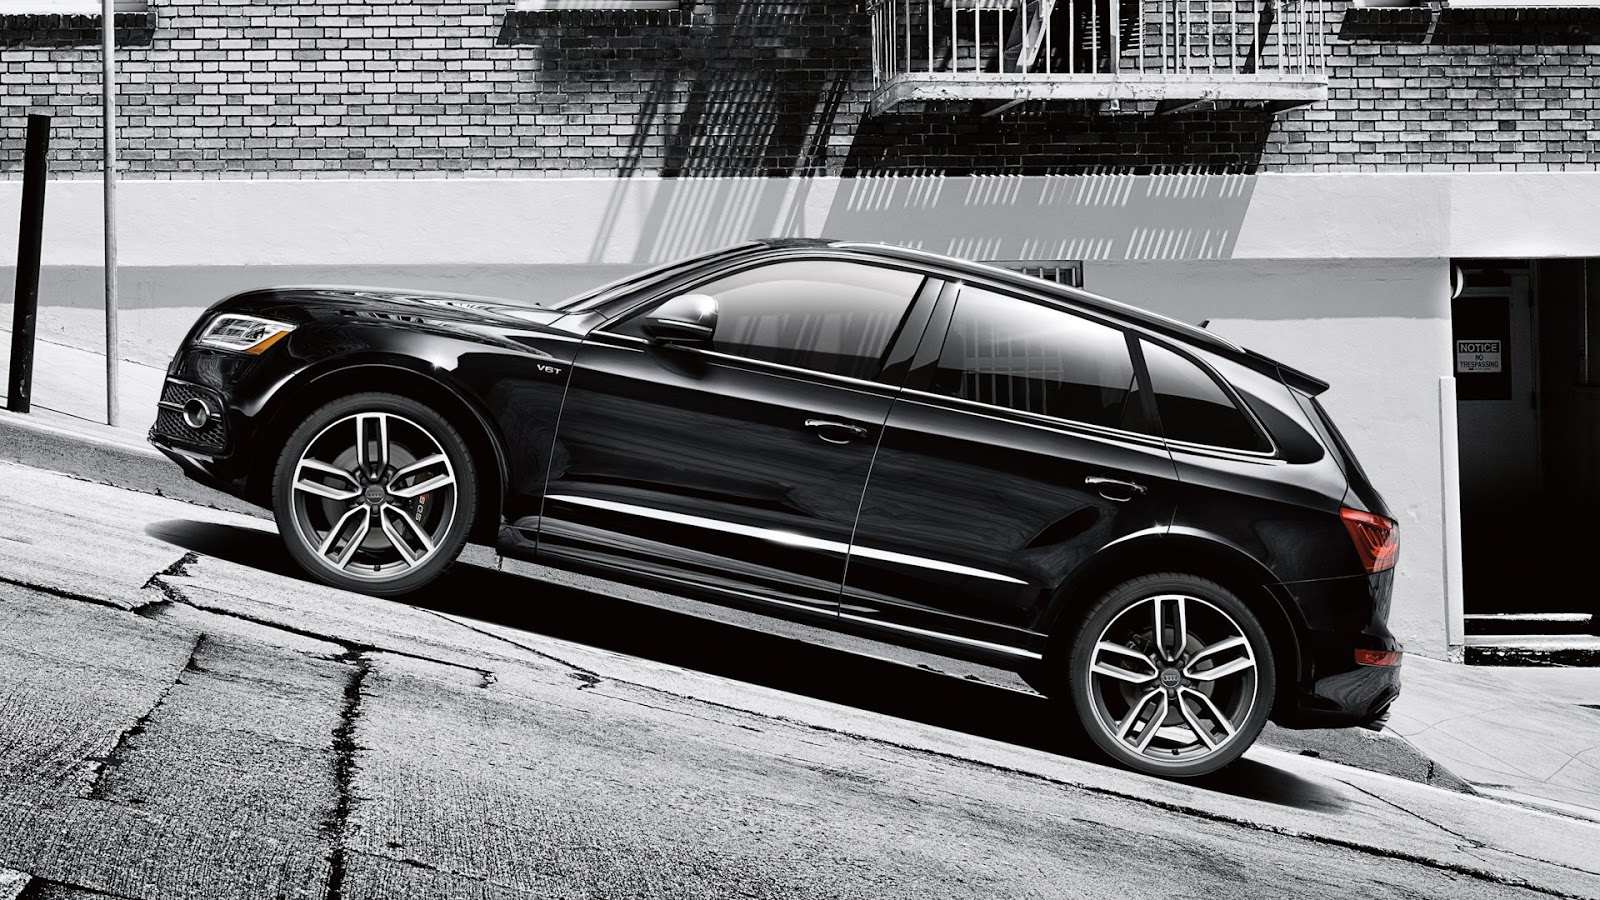 it's official: the audi sq5 is fun to drive - the unofficial audi